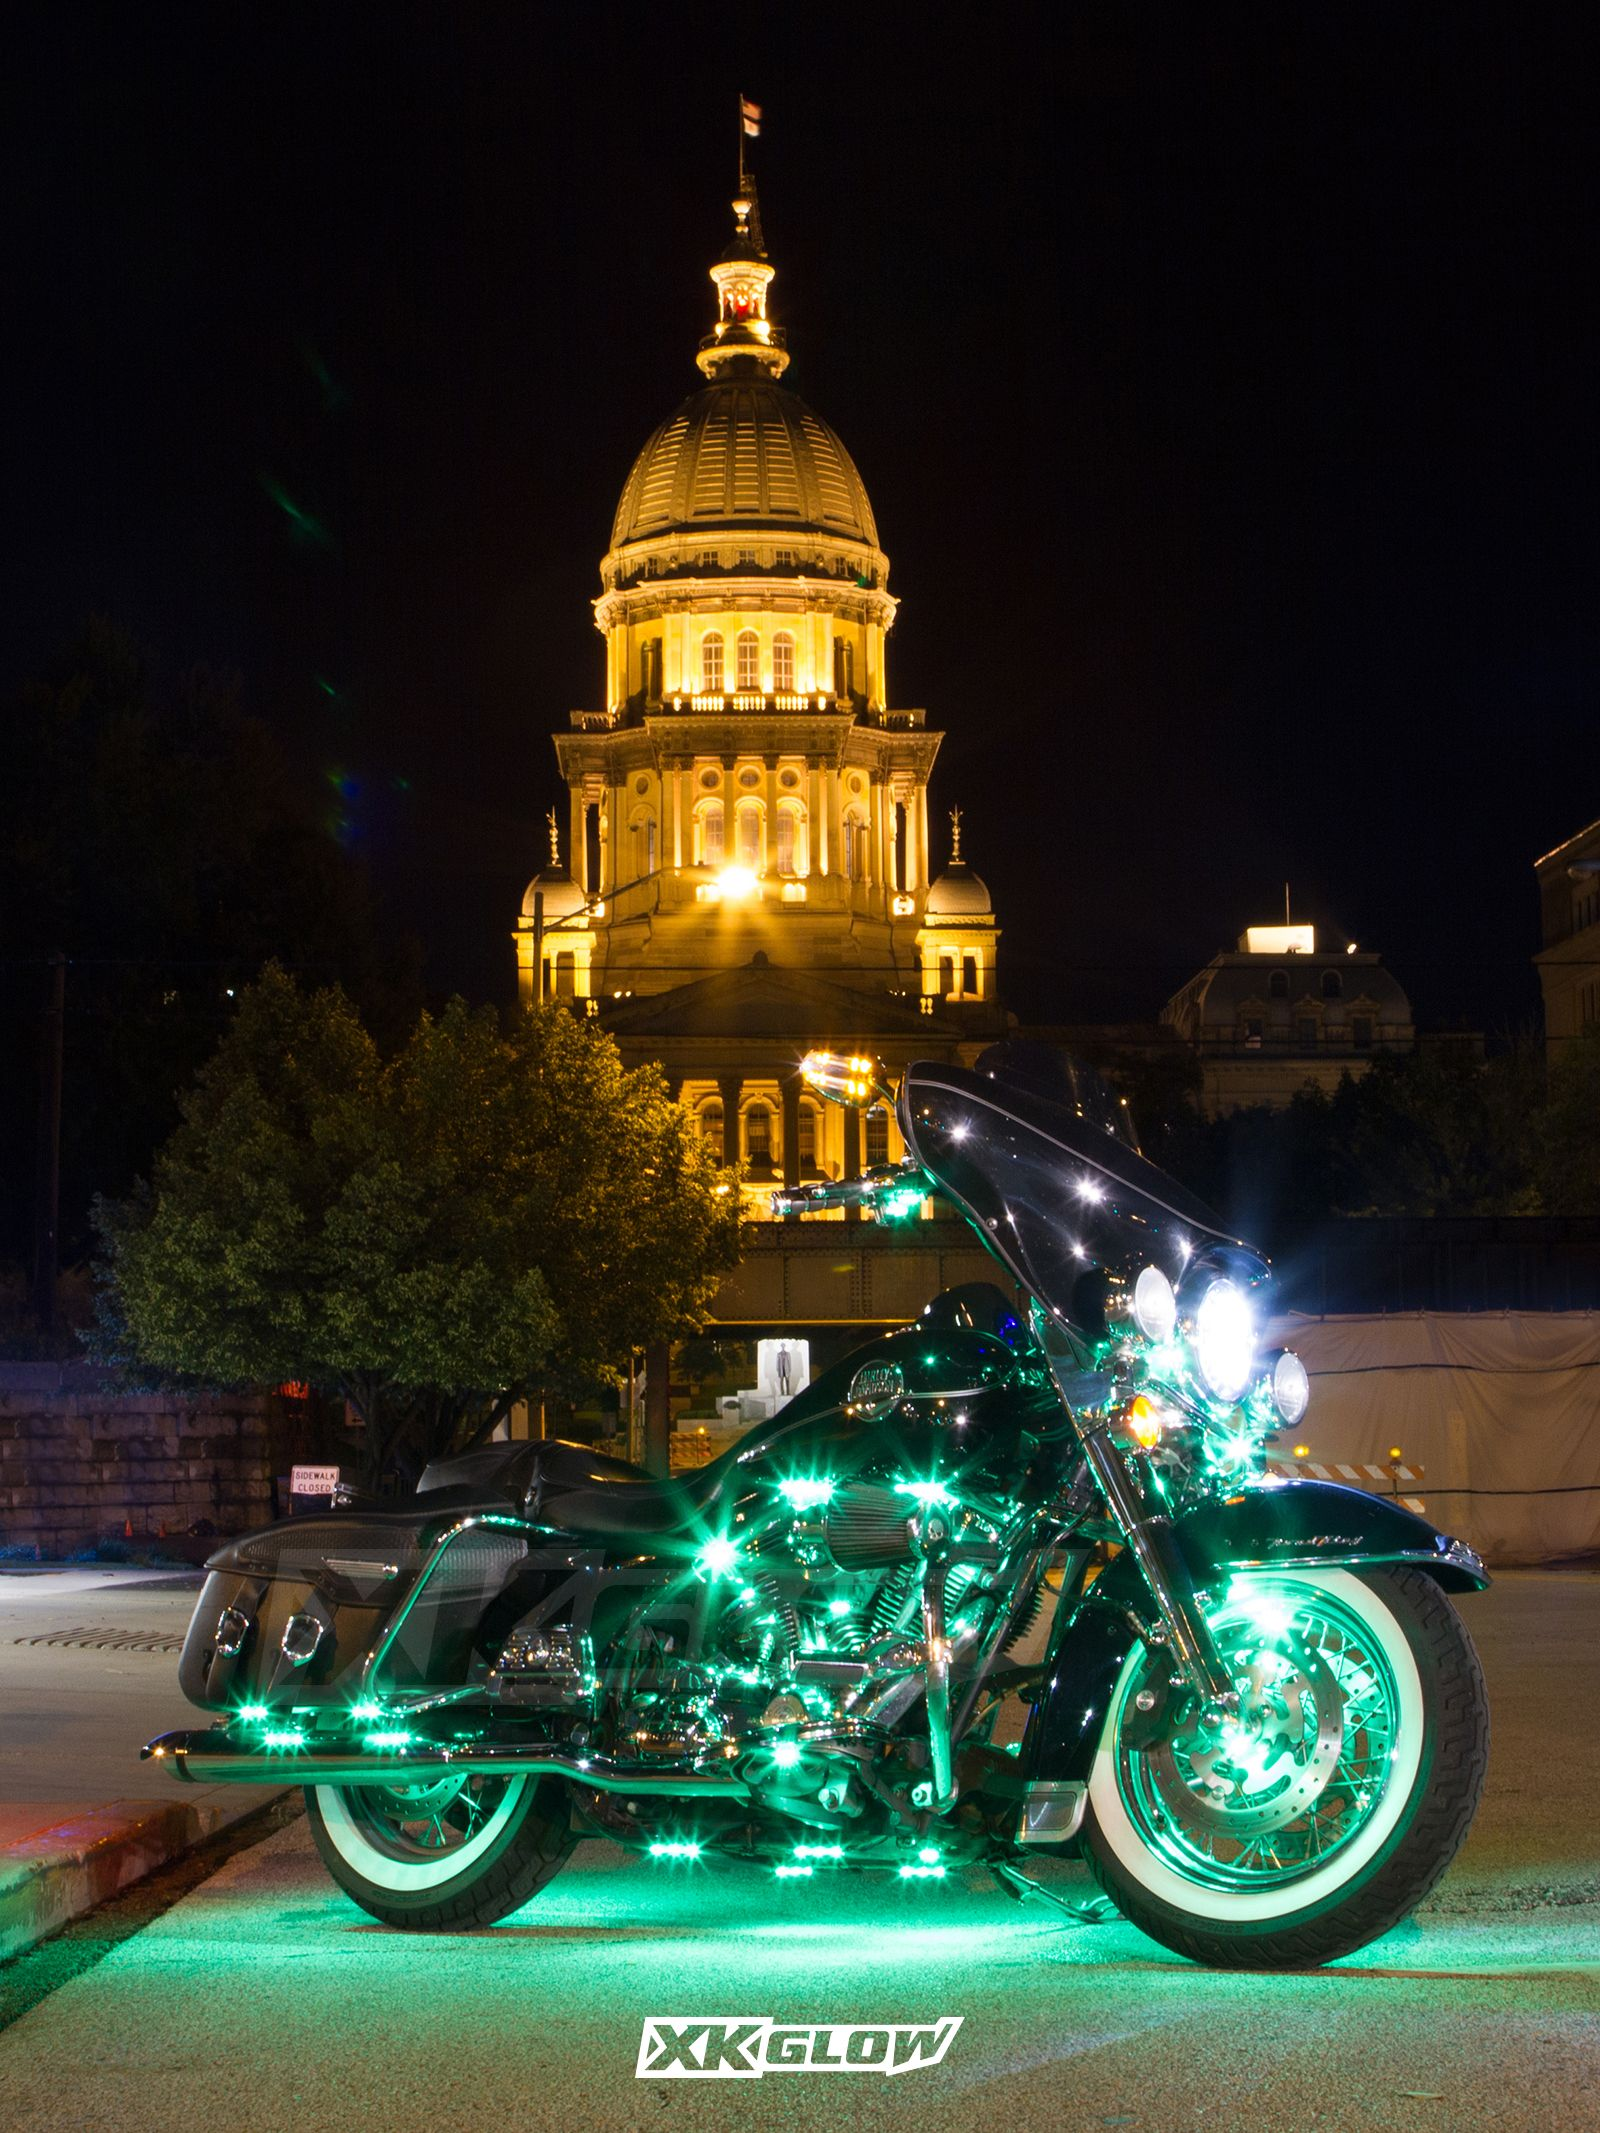 Pin by XKGLOW on Motorcycle Motorcycle led lighting, Led